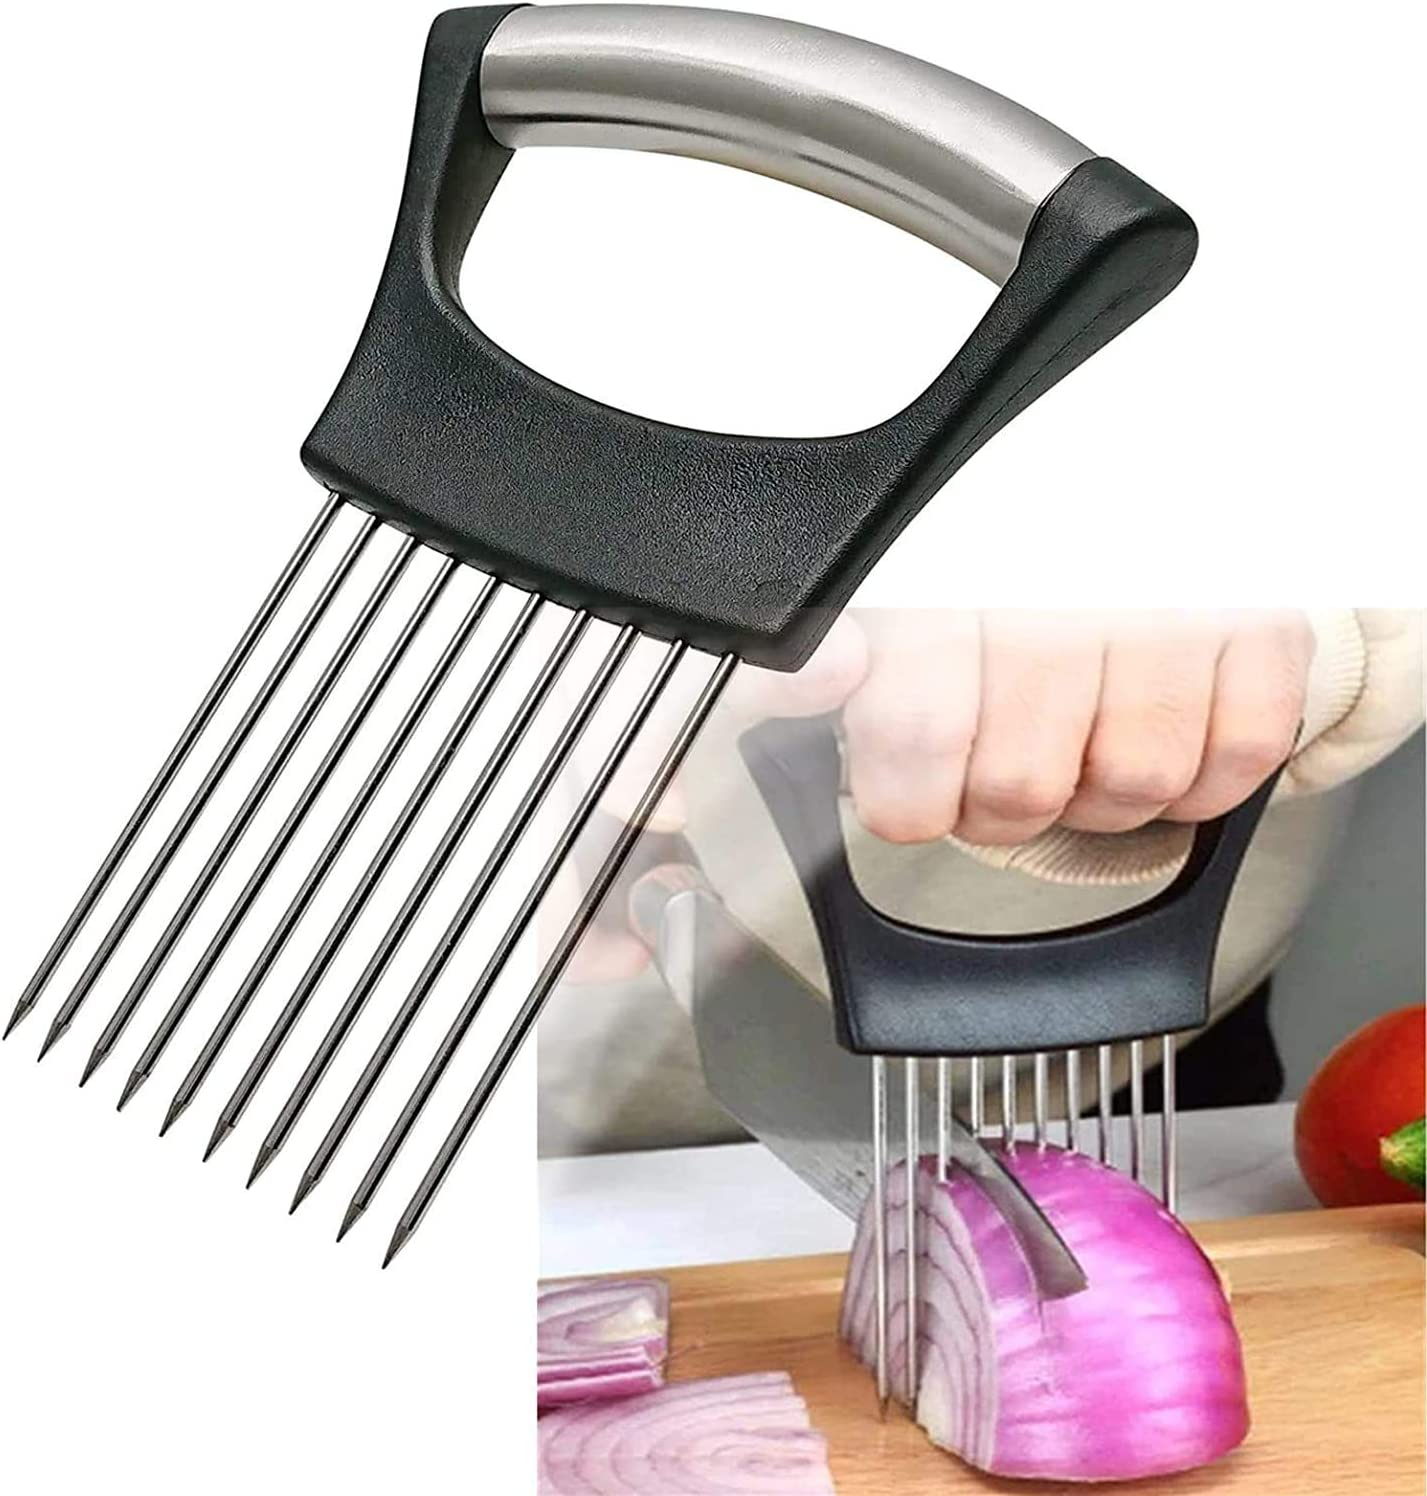 Food Slice Assistant Onion Holder Slicer Steel Miami Mall Deluxe Vegeta Stainless